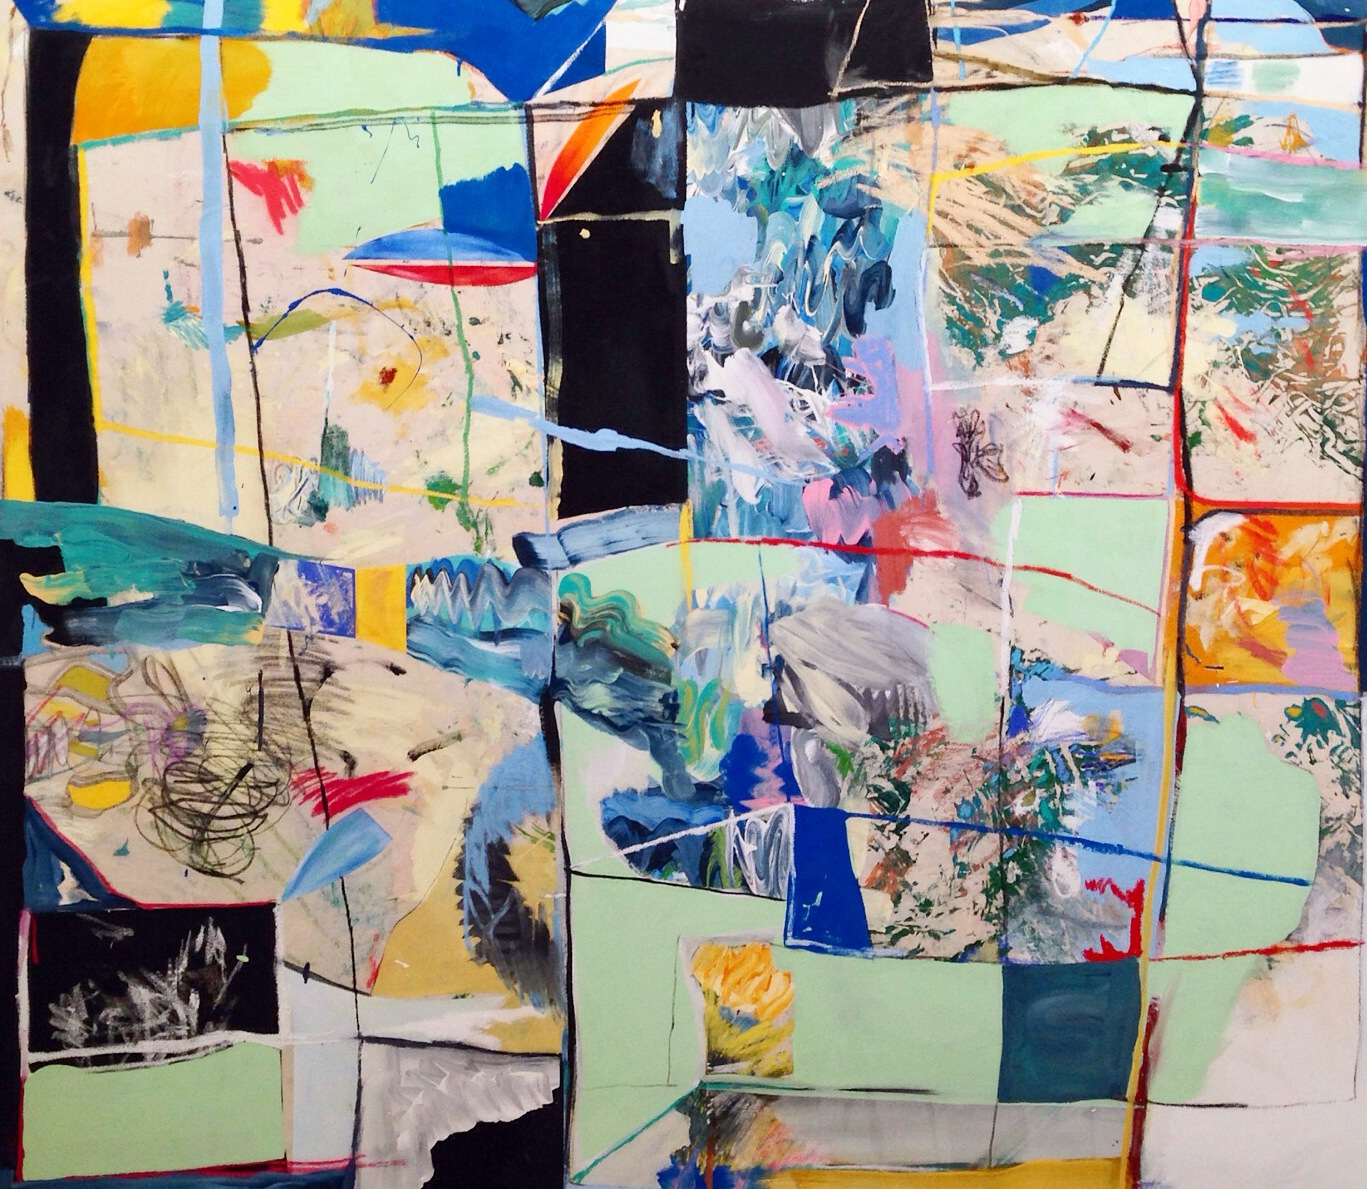 Acrylic, Oil Stick, Soft Pastel, and Charcoal on Canvas  66 x 54 in  168 x 137 cm